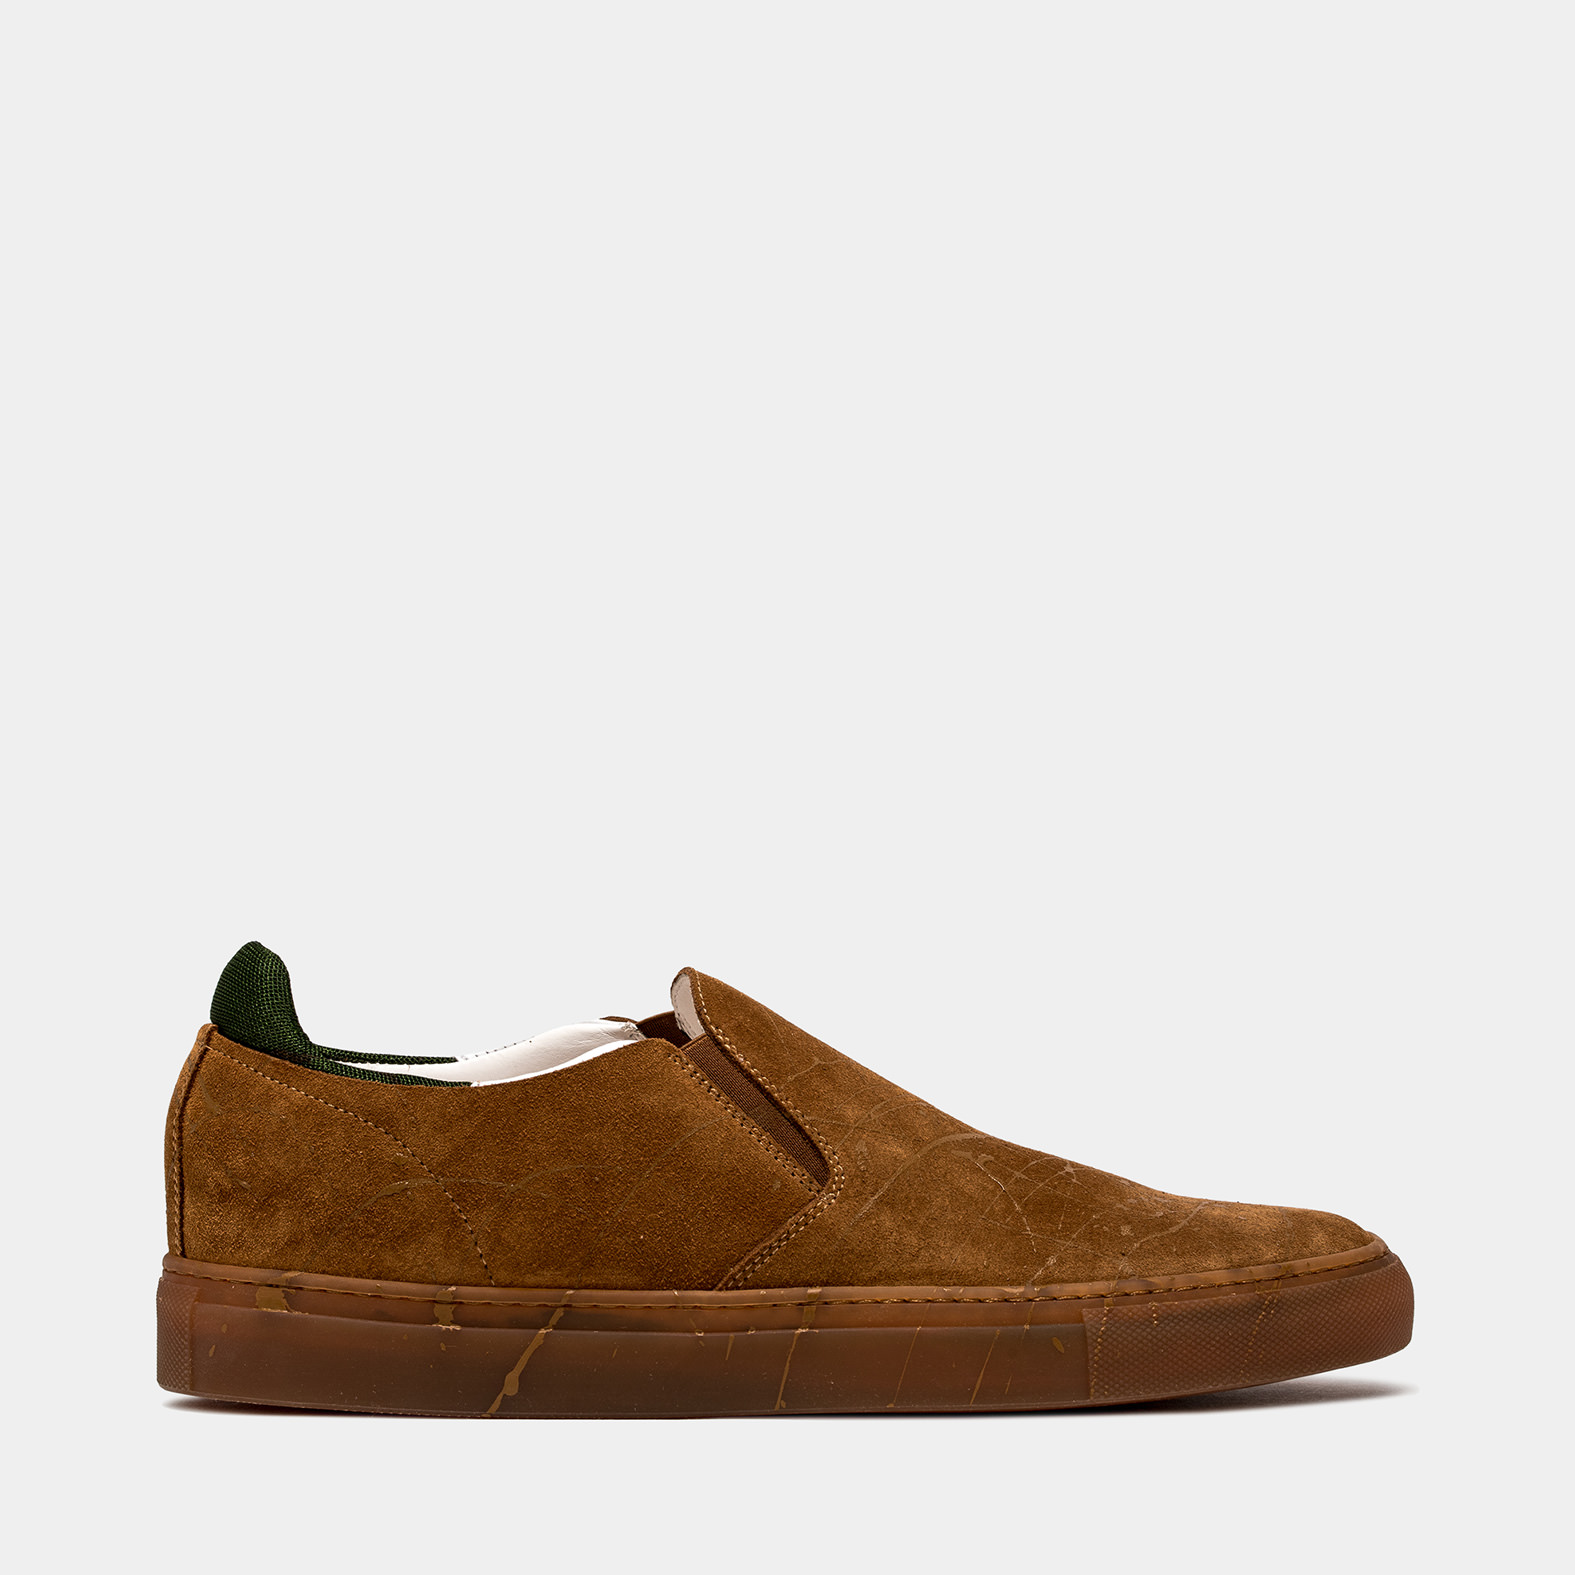 BUTTERO: TANINO SLIP ON SHOES IN SIENNA BROWN SUEDE